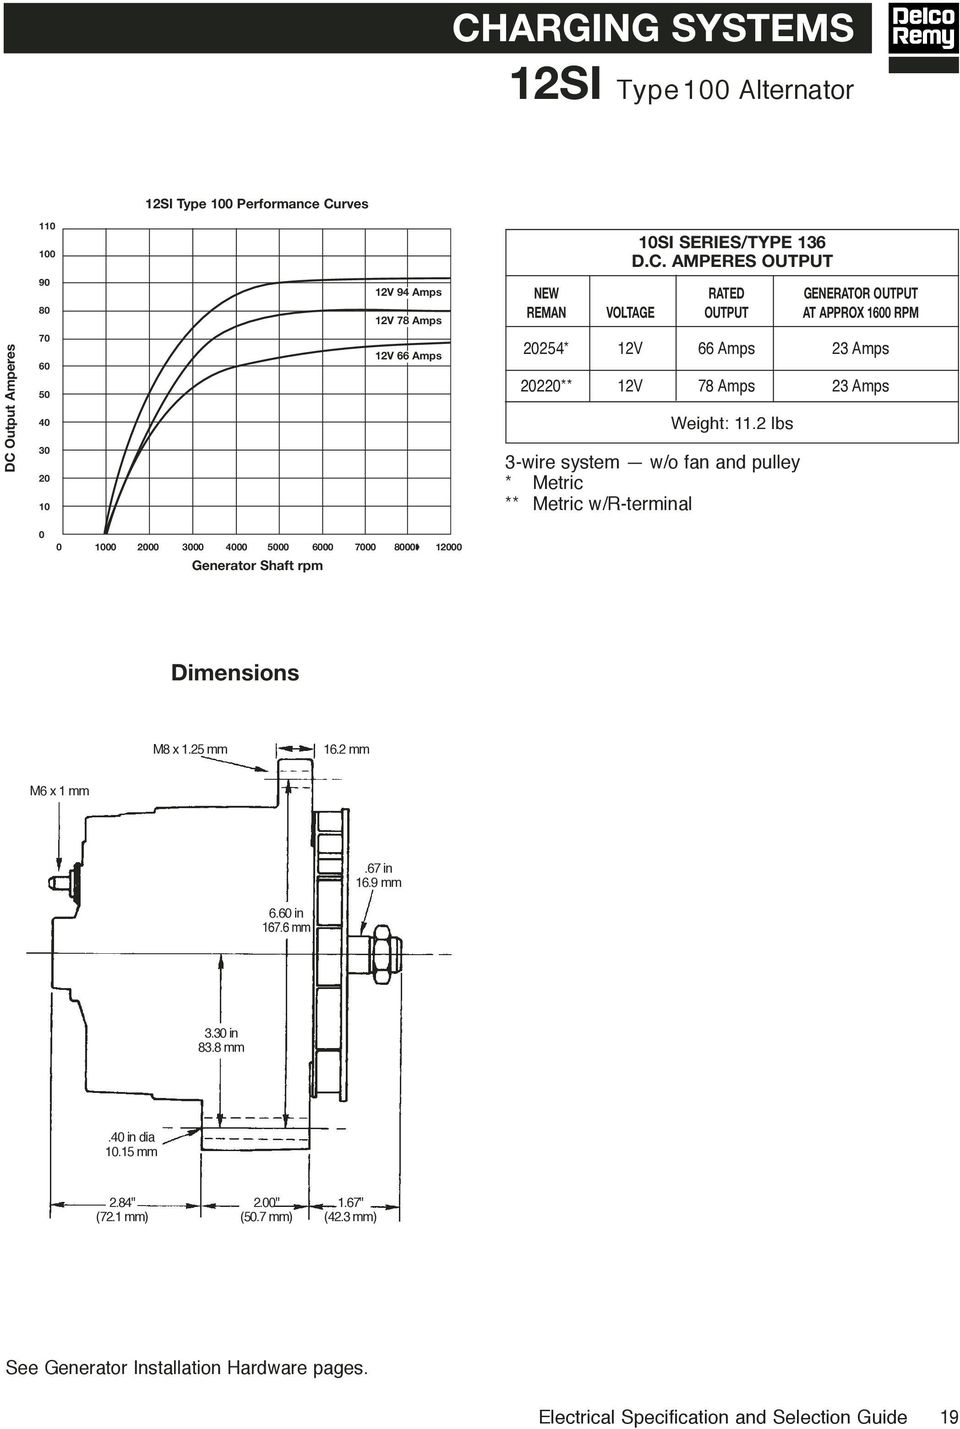 Electrical Specifications & Selection Guide - PDF